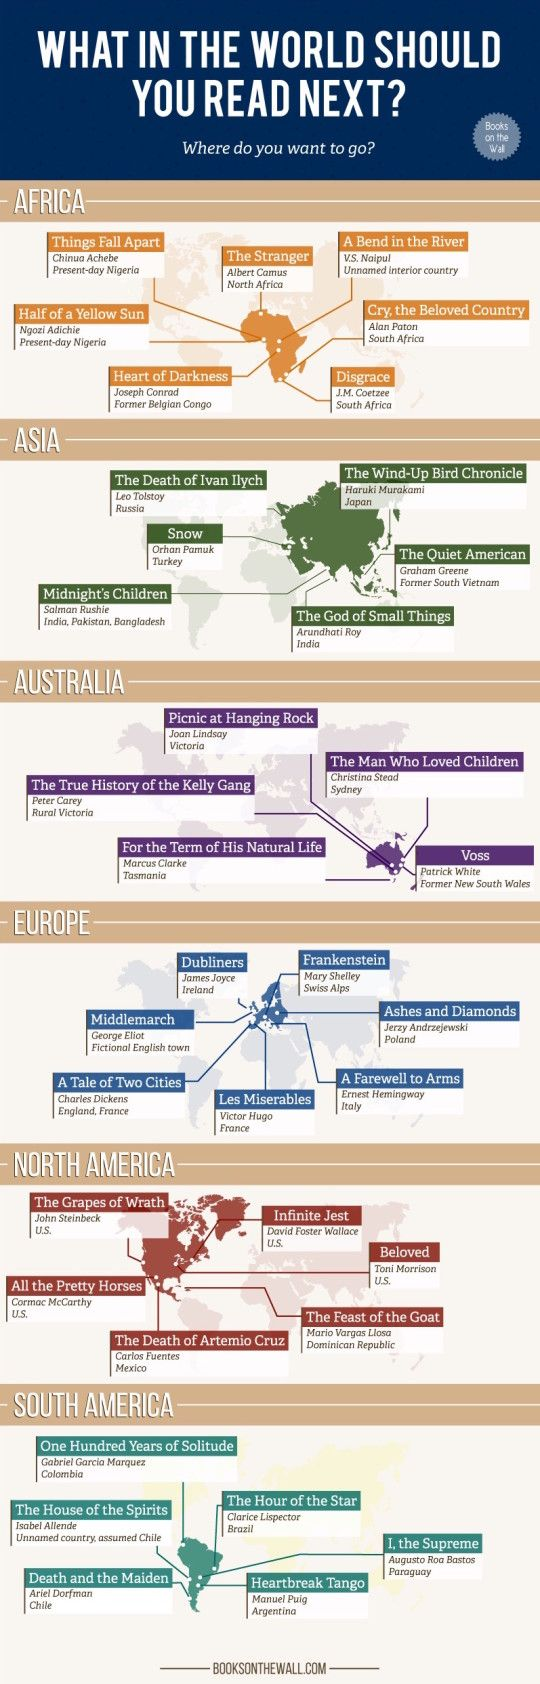 37 books set in different countries - 5-7 for each continent #infographic: